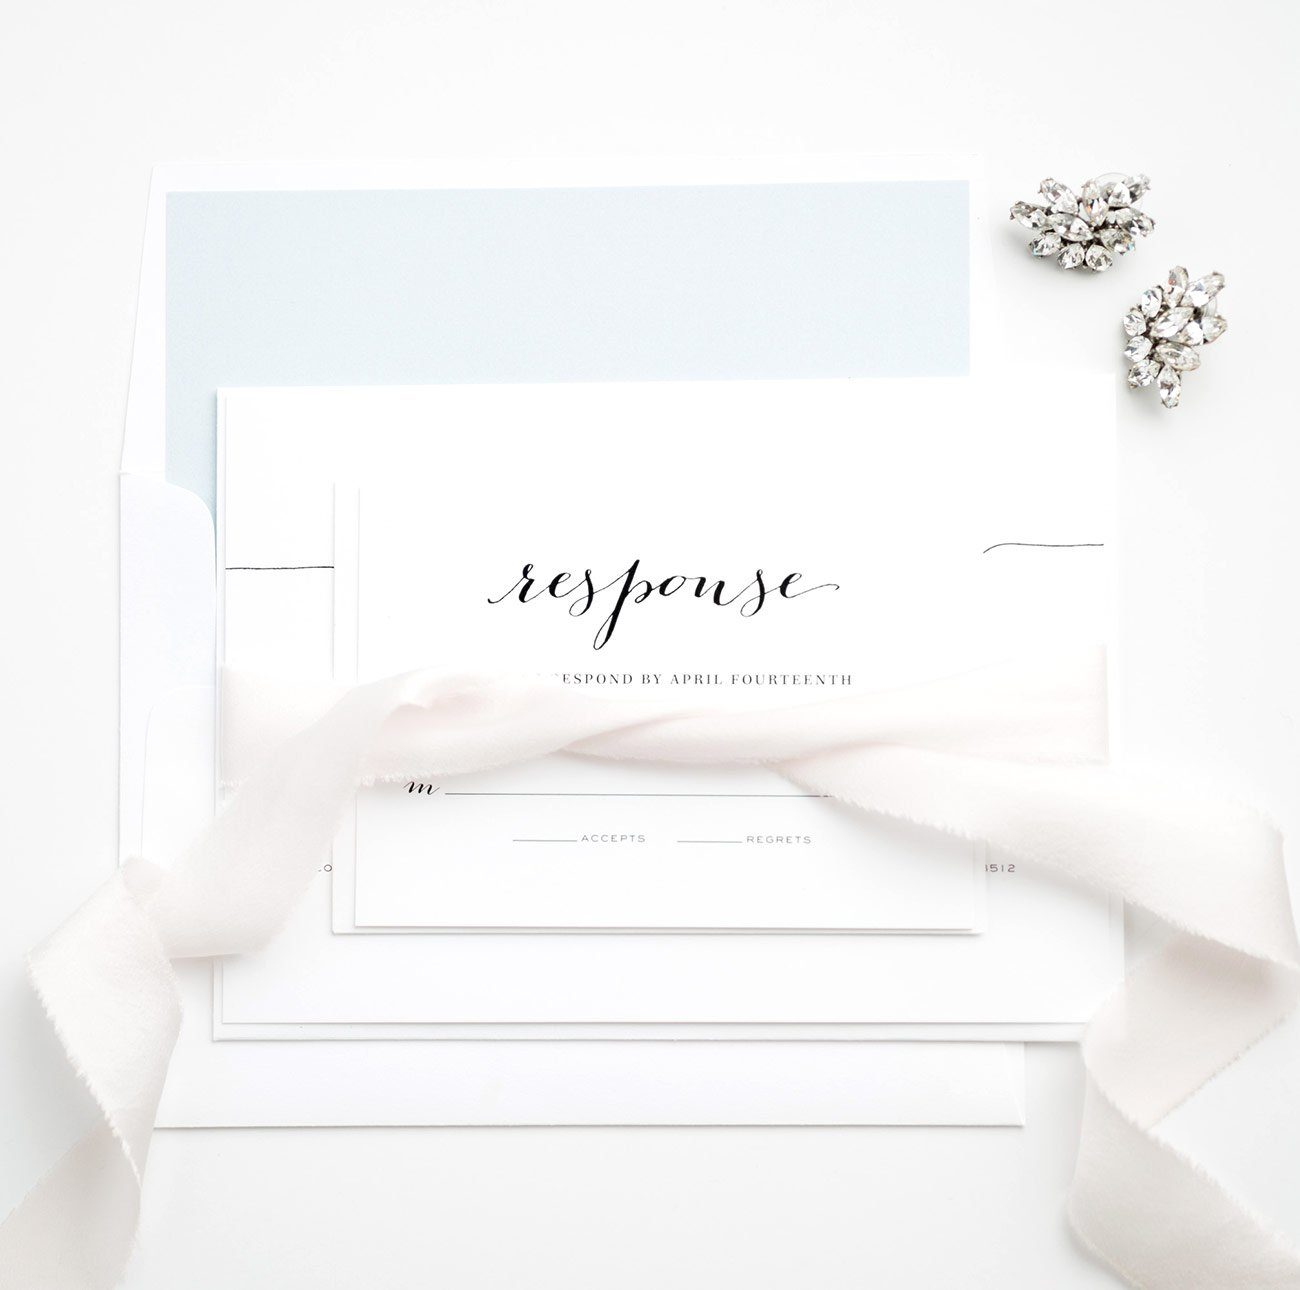 Romantic Wedding Invitations with a silk ribbon in light blue